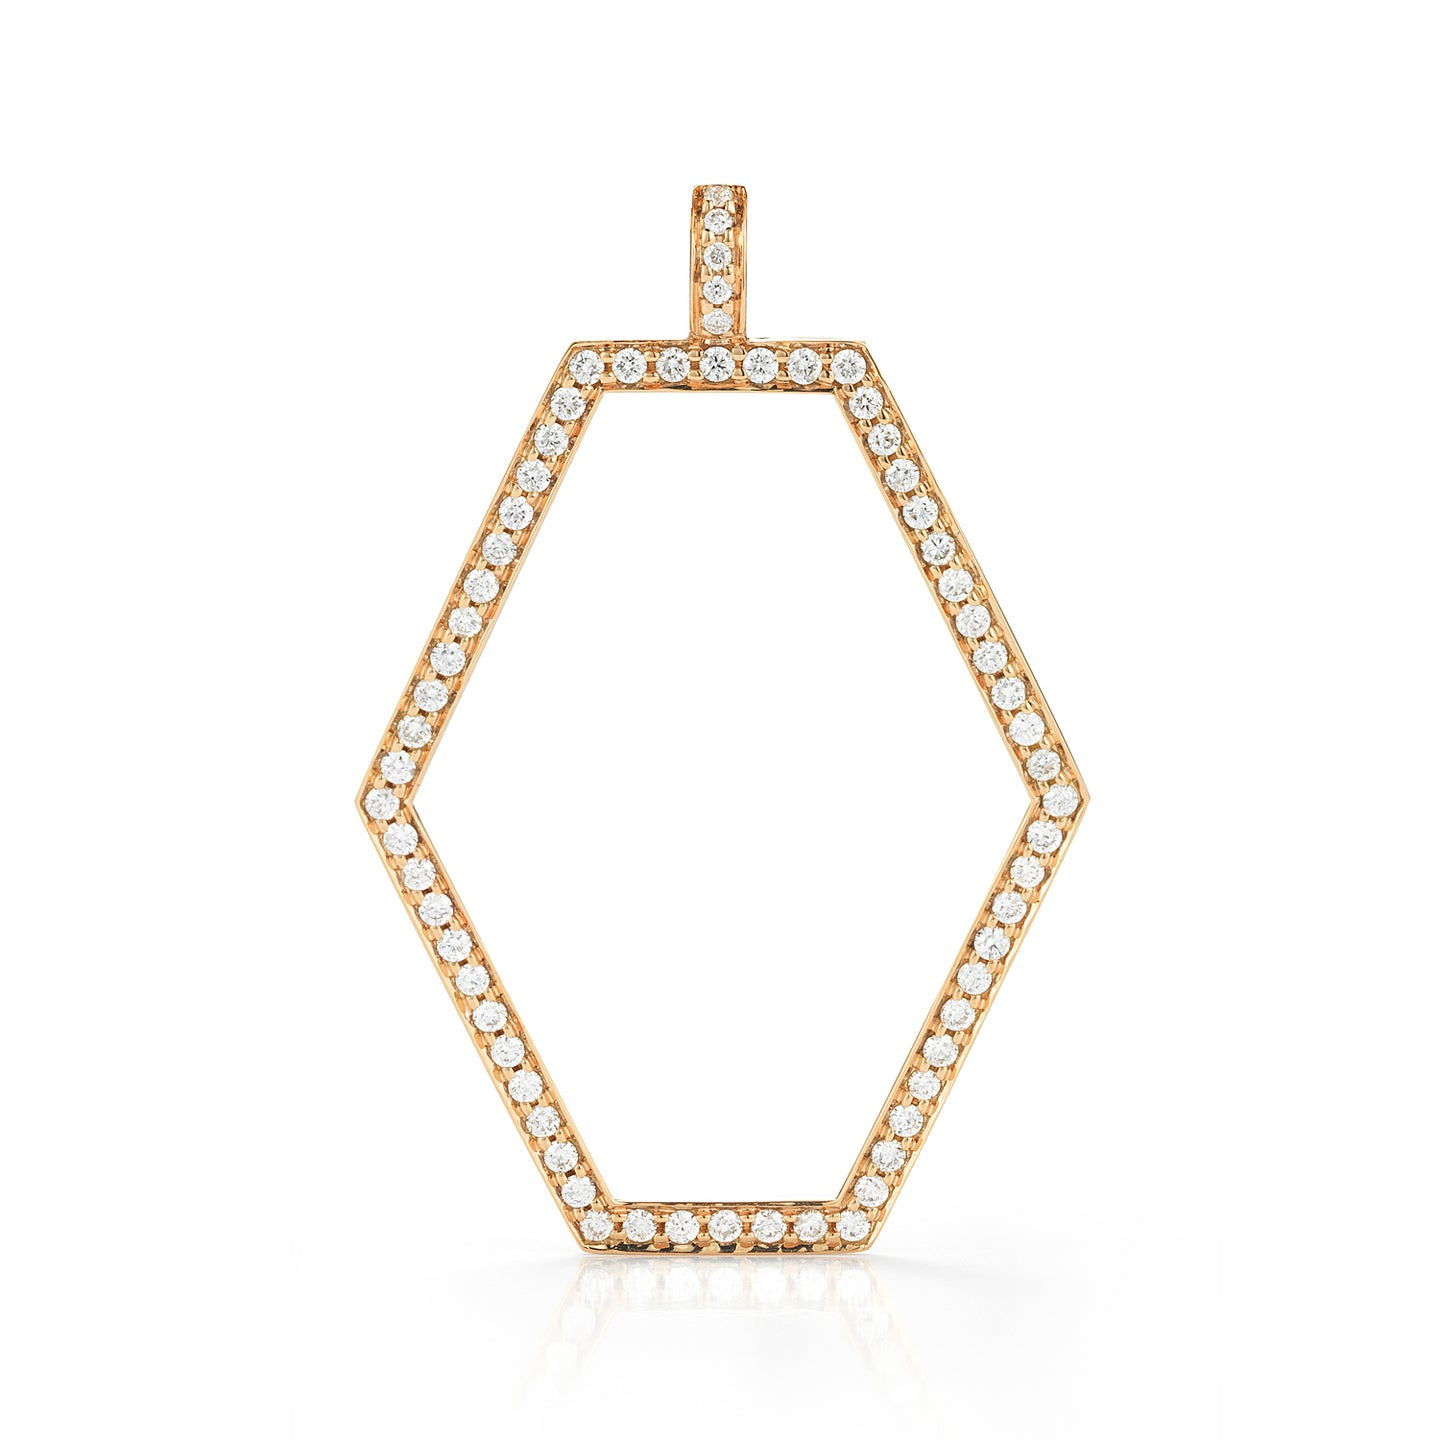 KEYNES 18K SMALL DIAMOND OPEN HEXAGON MOTIF CHARM